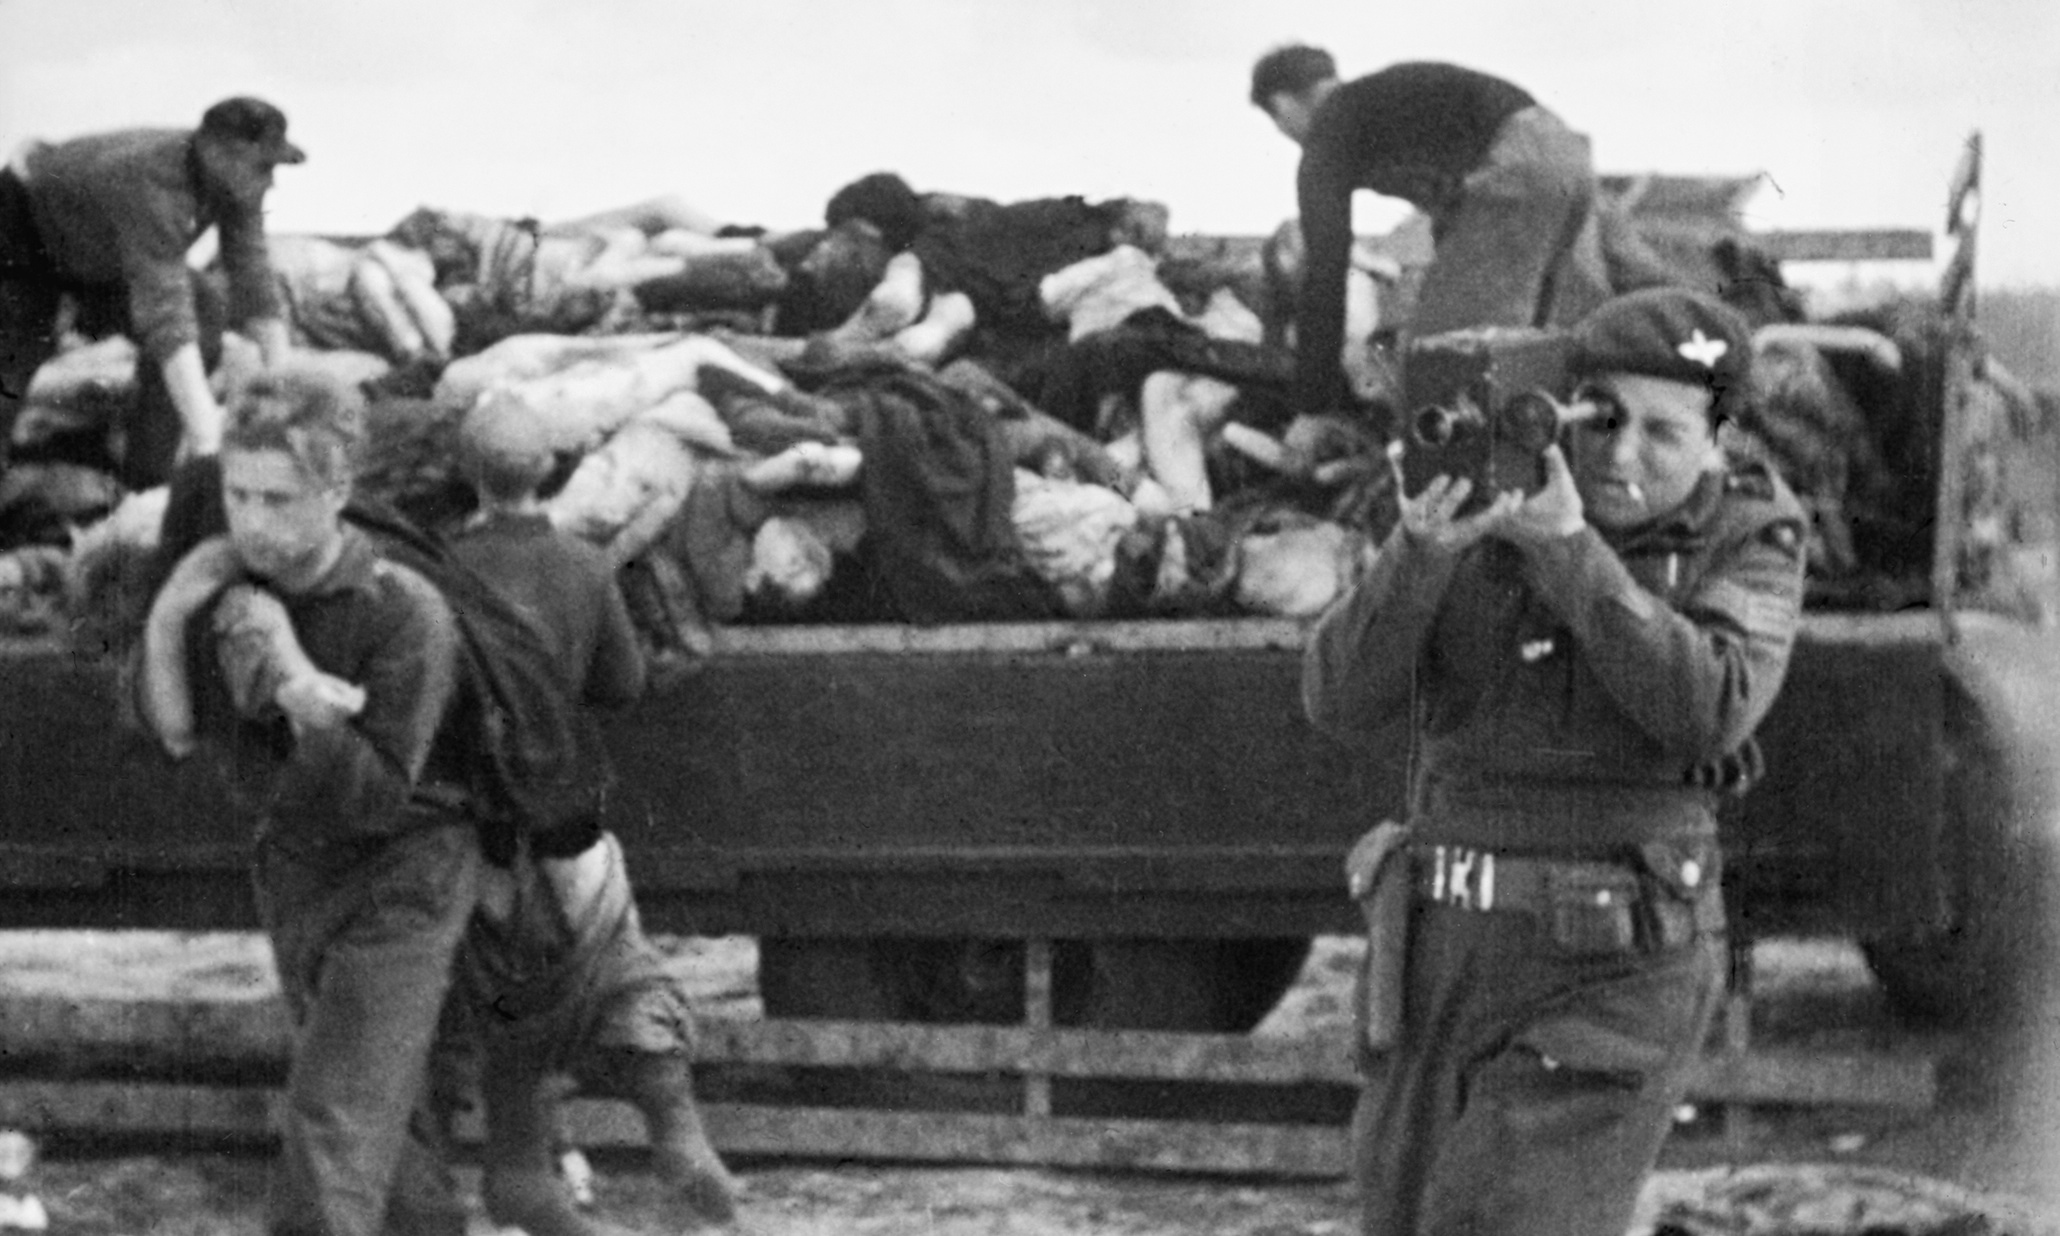 Holocaust documentary whose horrors remained unseen reaches cinemas – after 70 years